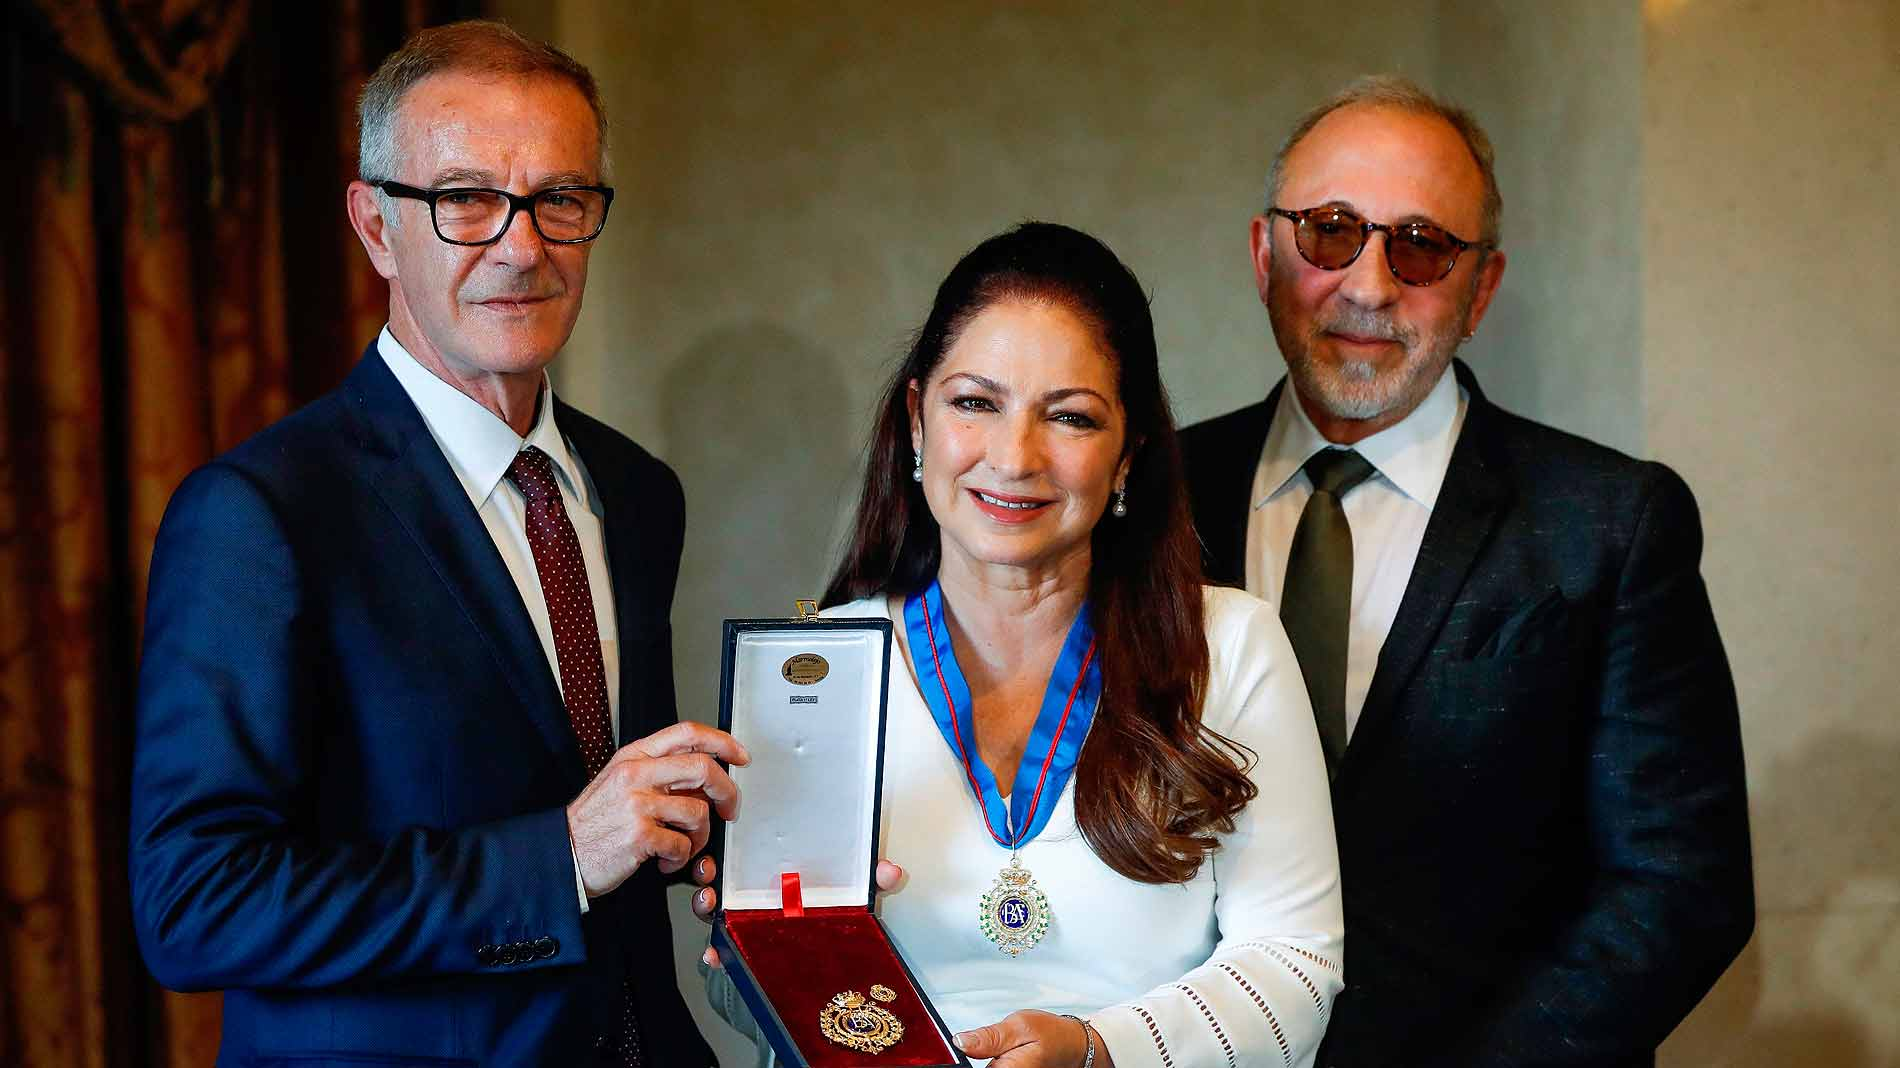 Ir al Video Gloria Estefan recibe la Medalla de Oro de las Bellas Artes